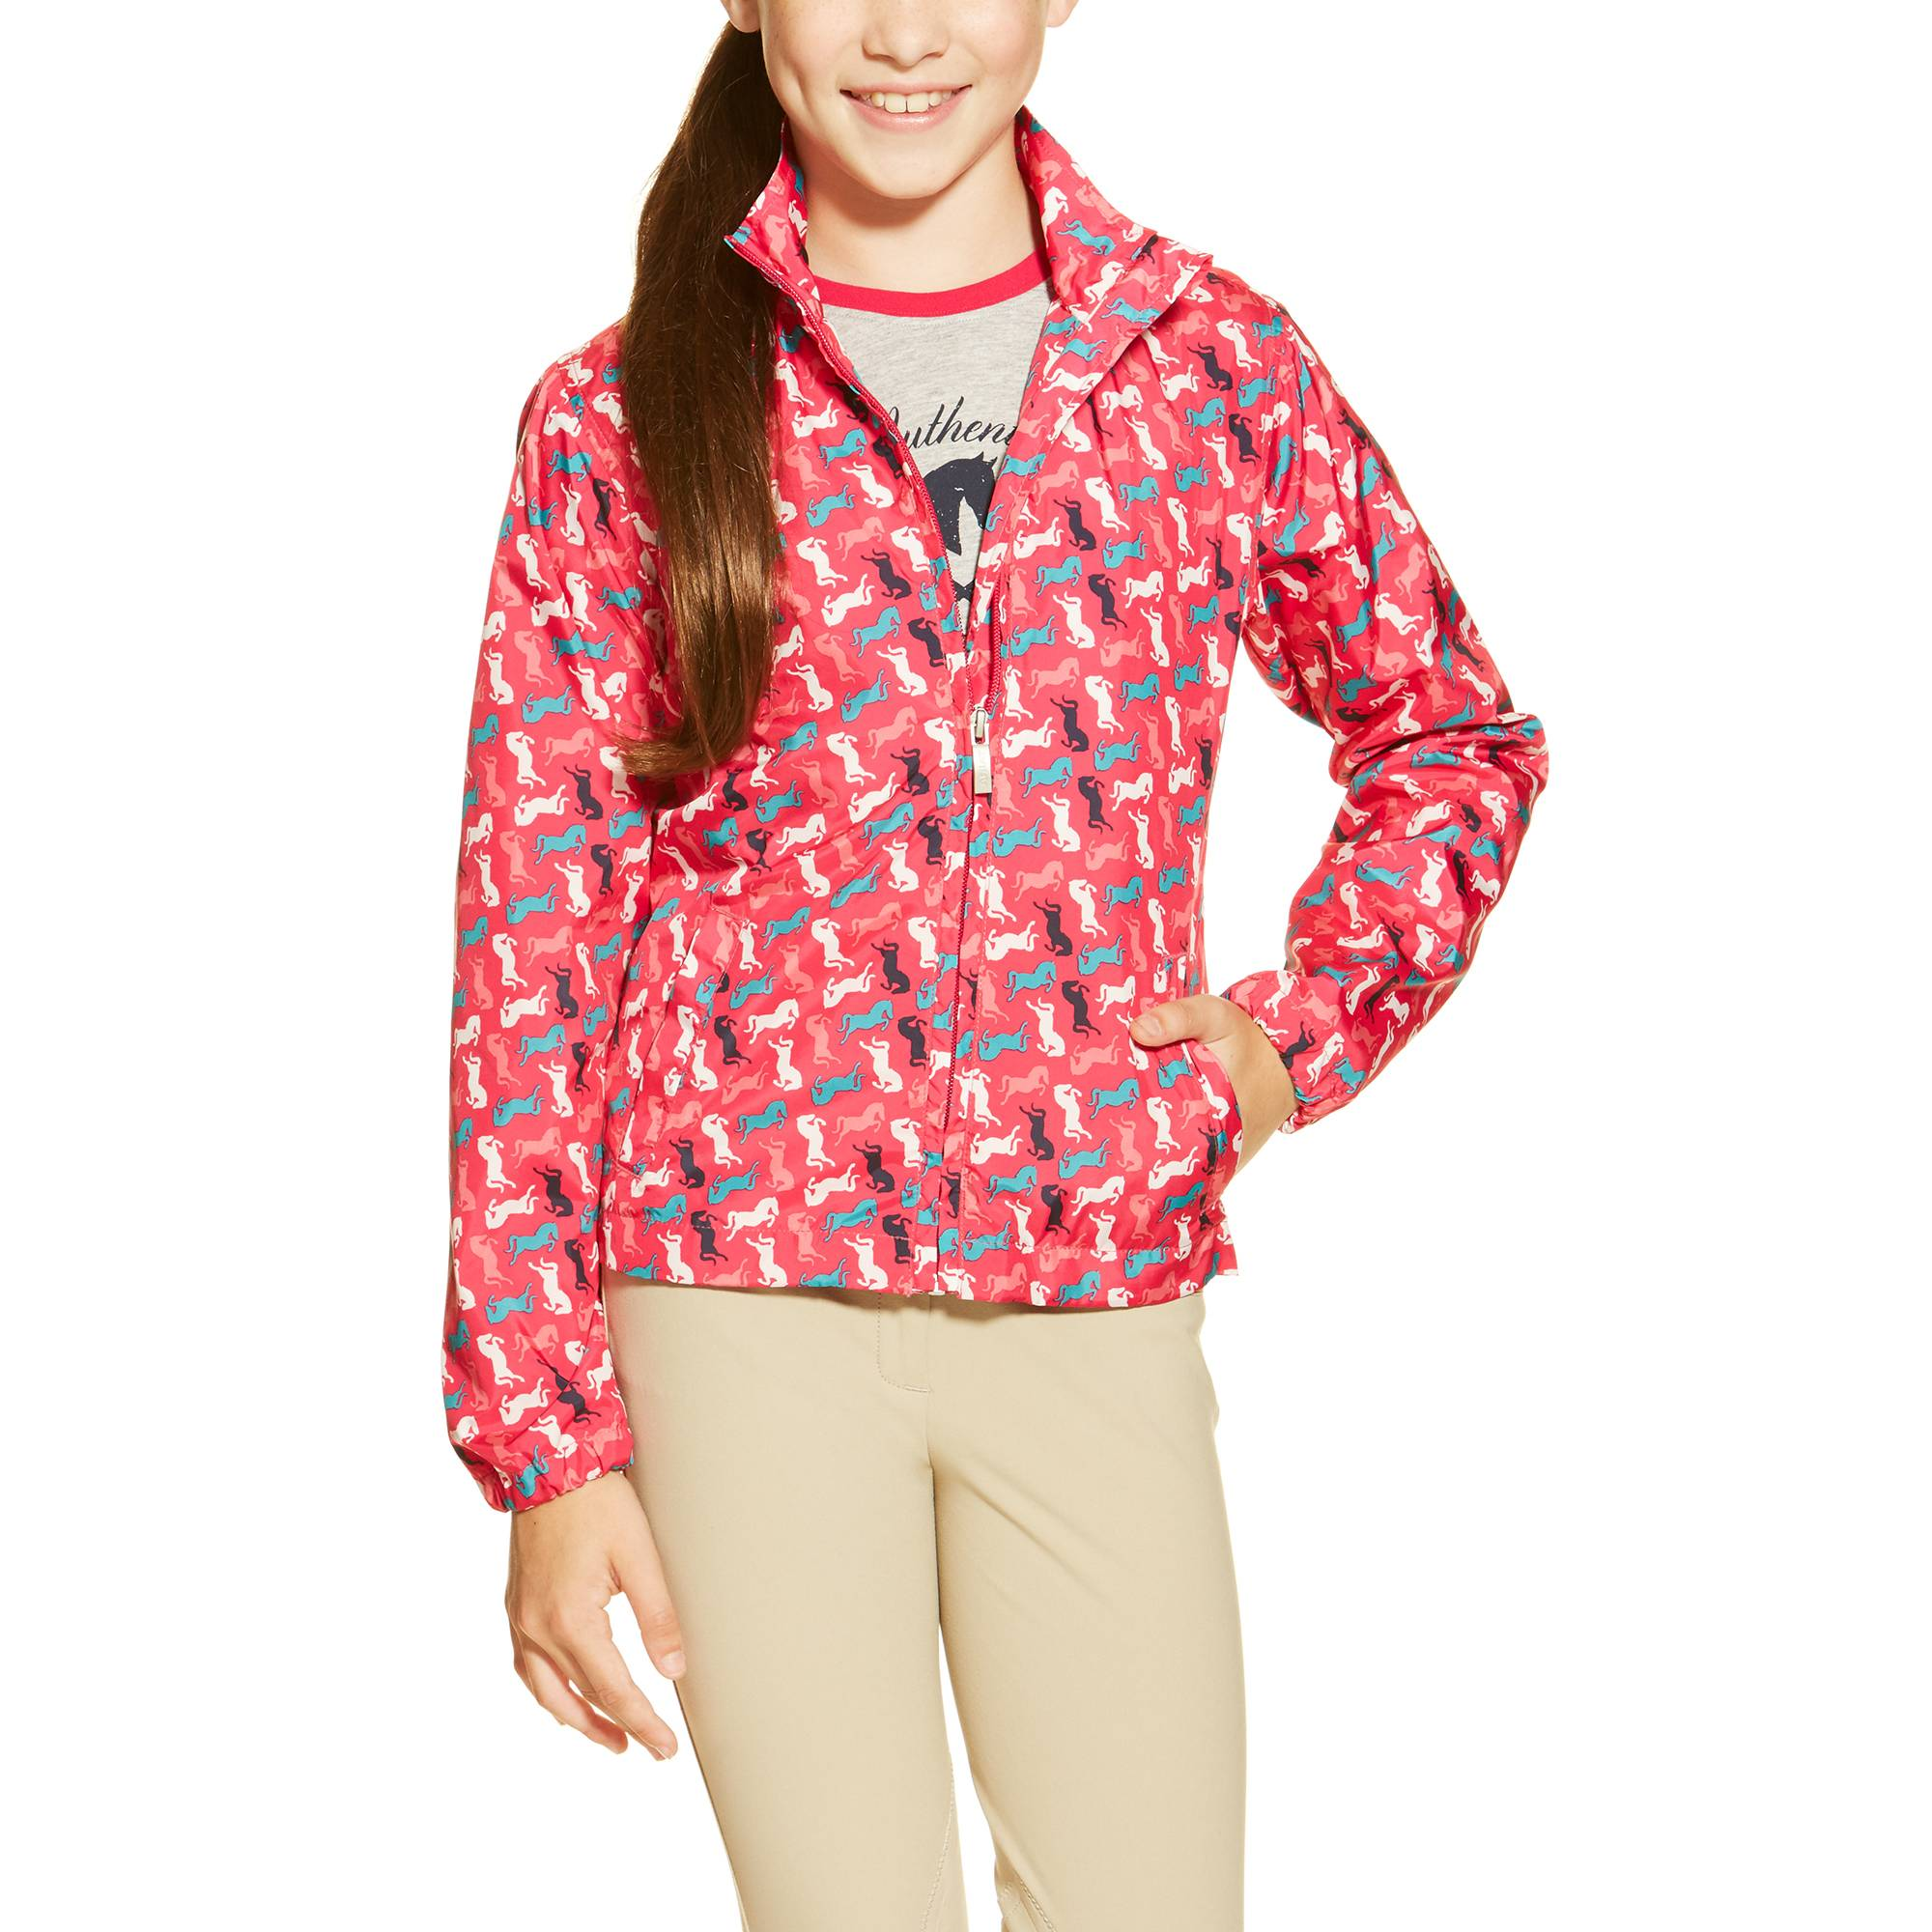 Ariat Avery Jacket - Girls - Multi